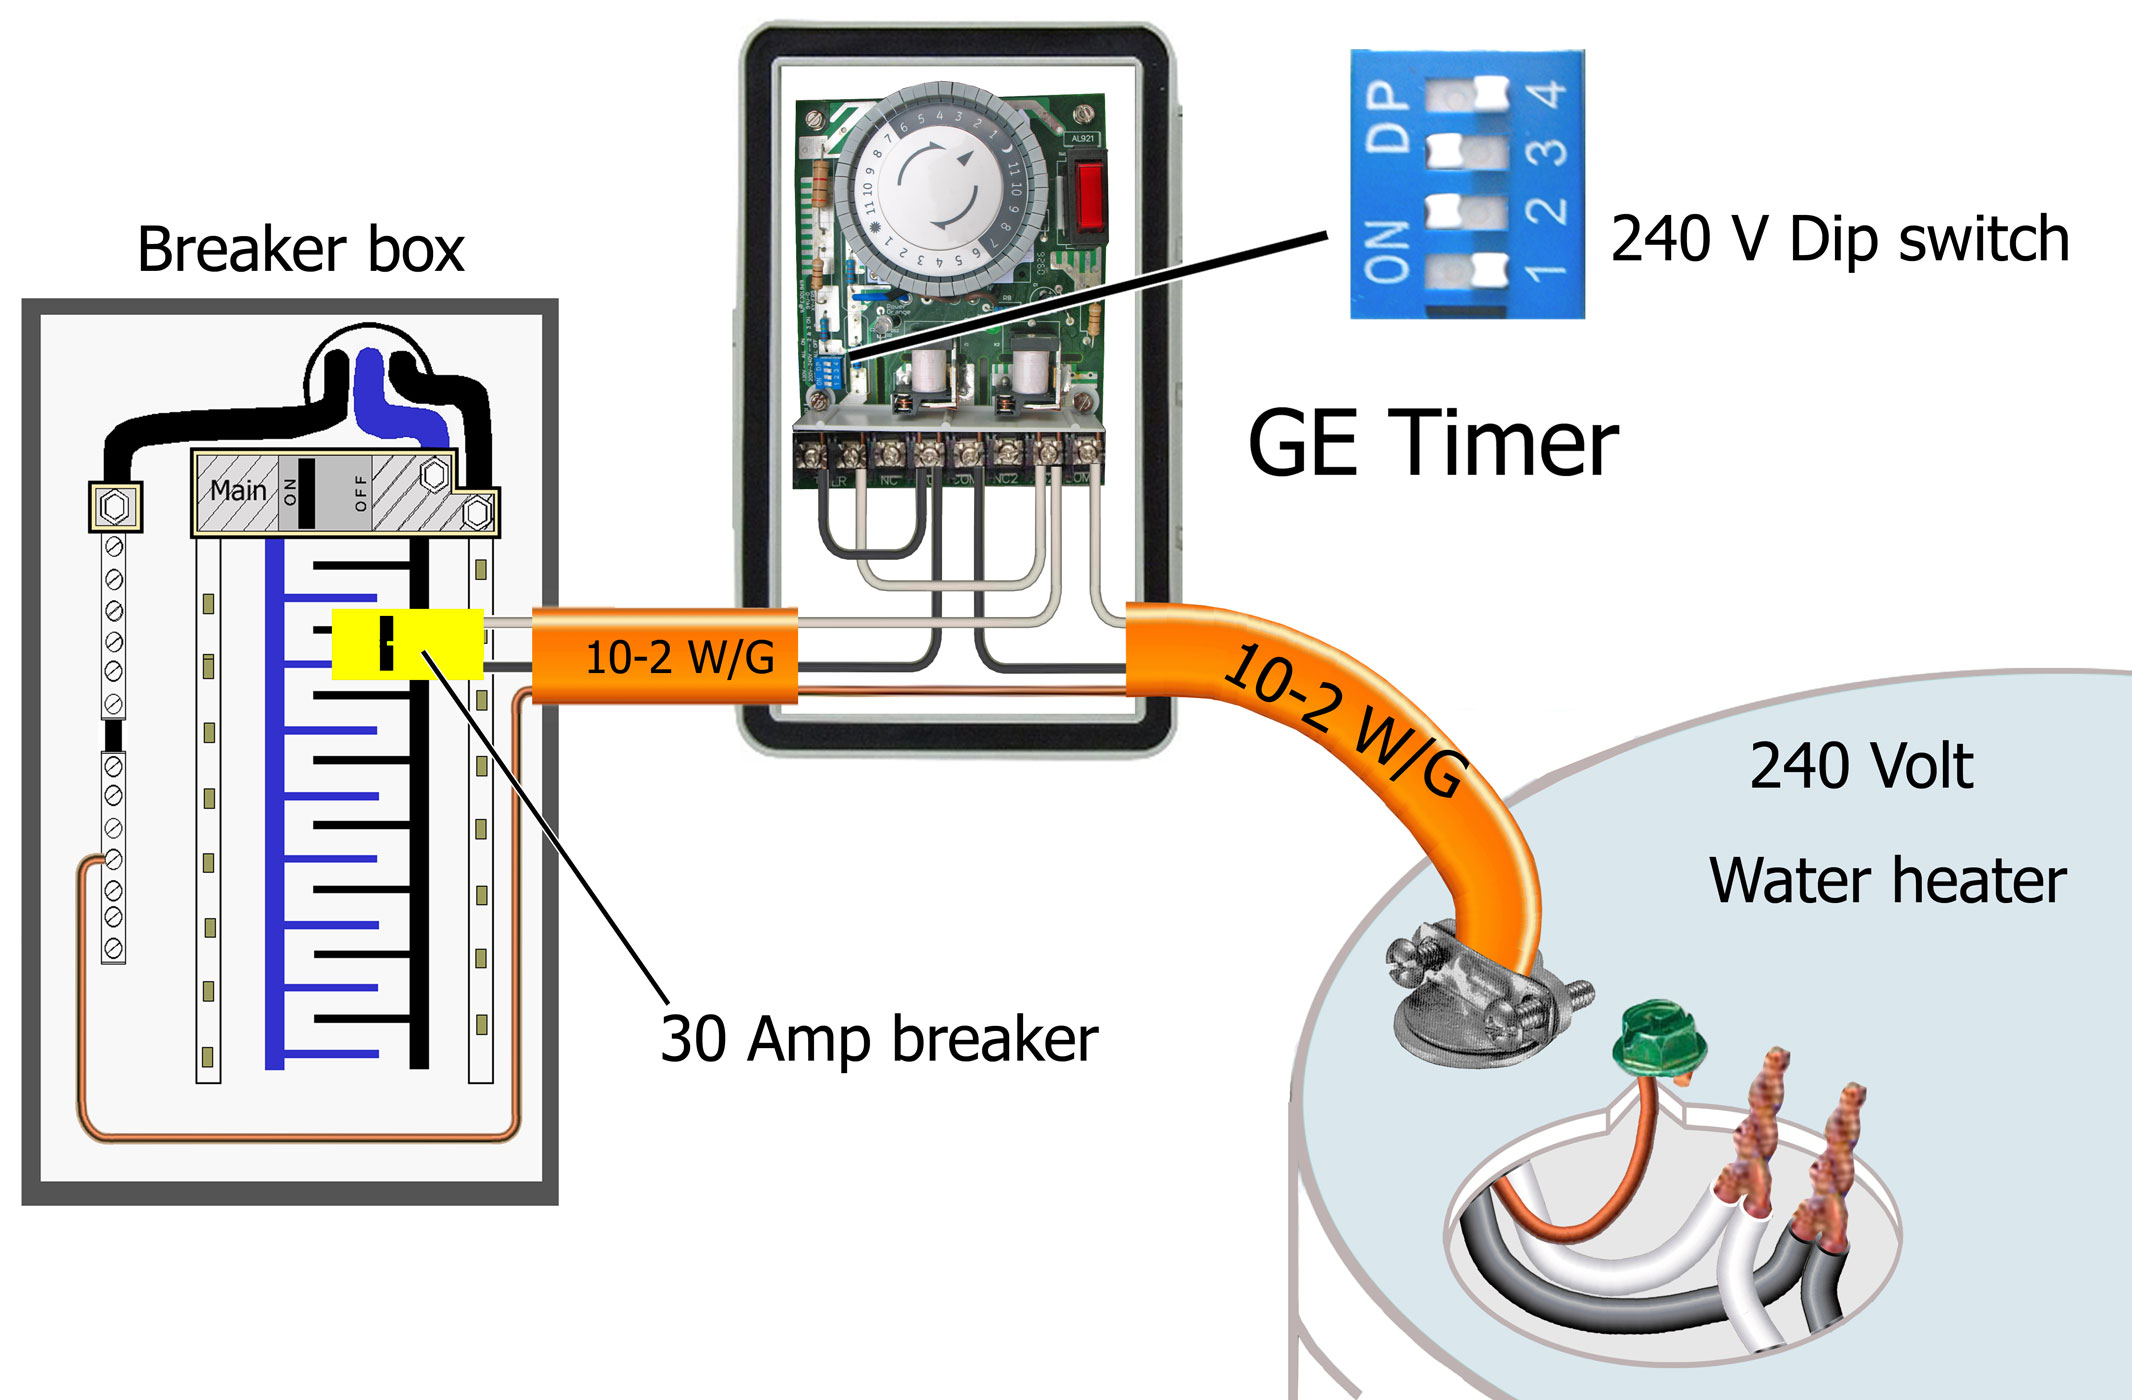 GE to water heater 500 how to wire ge 15207 timer sprinkler timer wiring diagram at soozxer.org